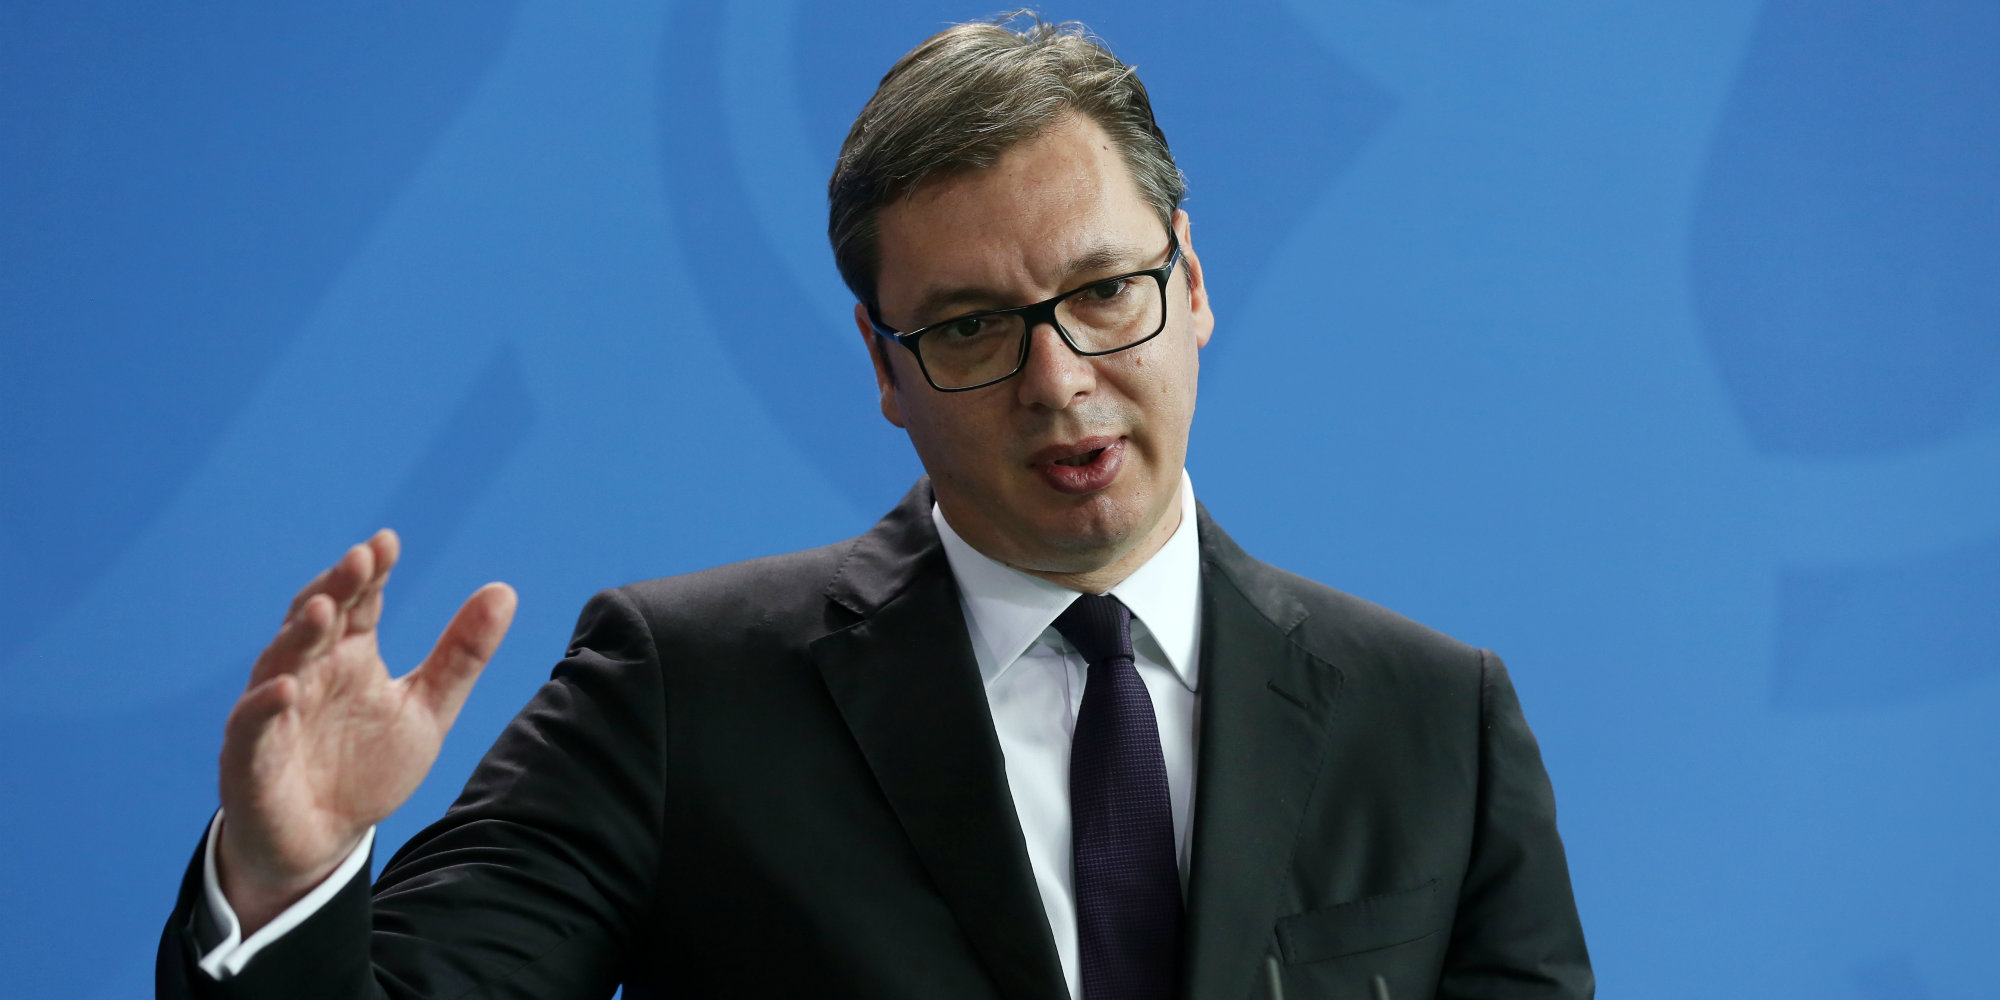 Scenarios for early elections in spring – Inside the mind of Aleksandar Vucic